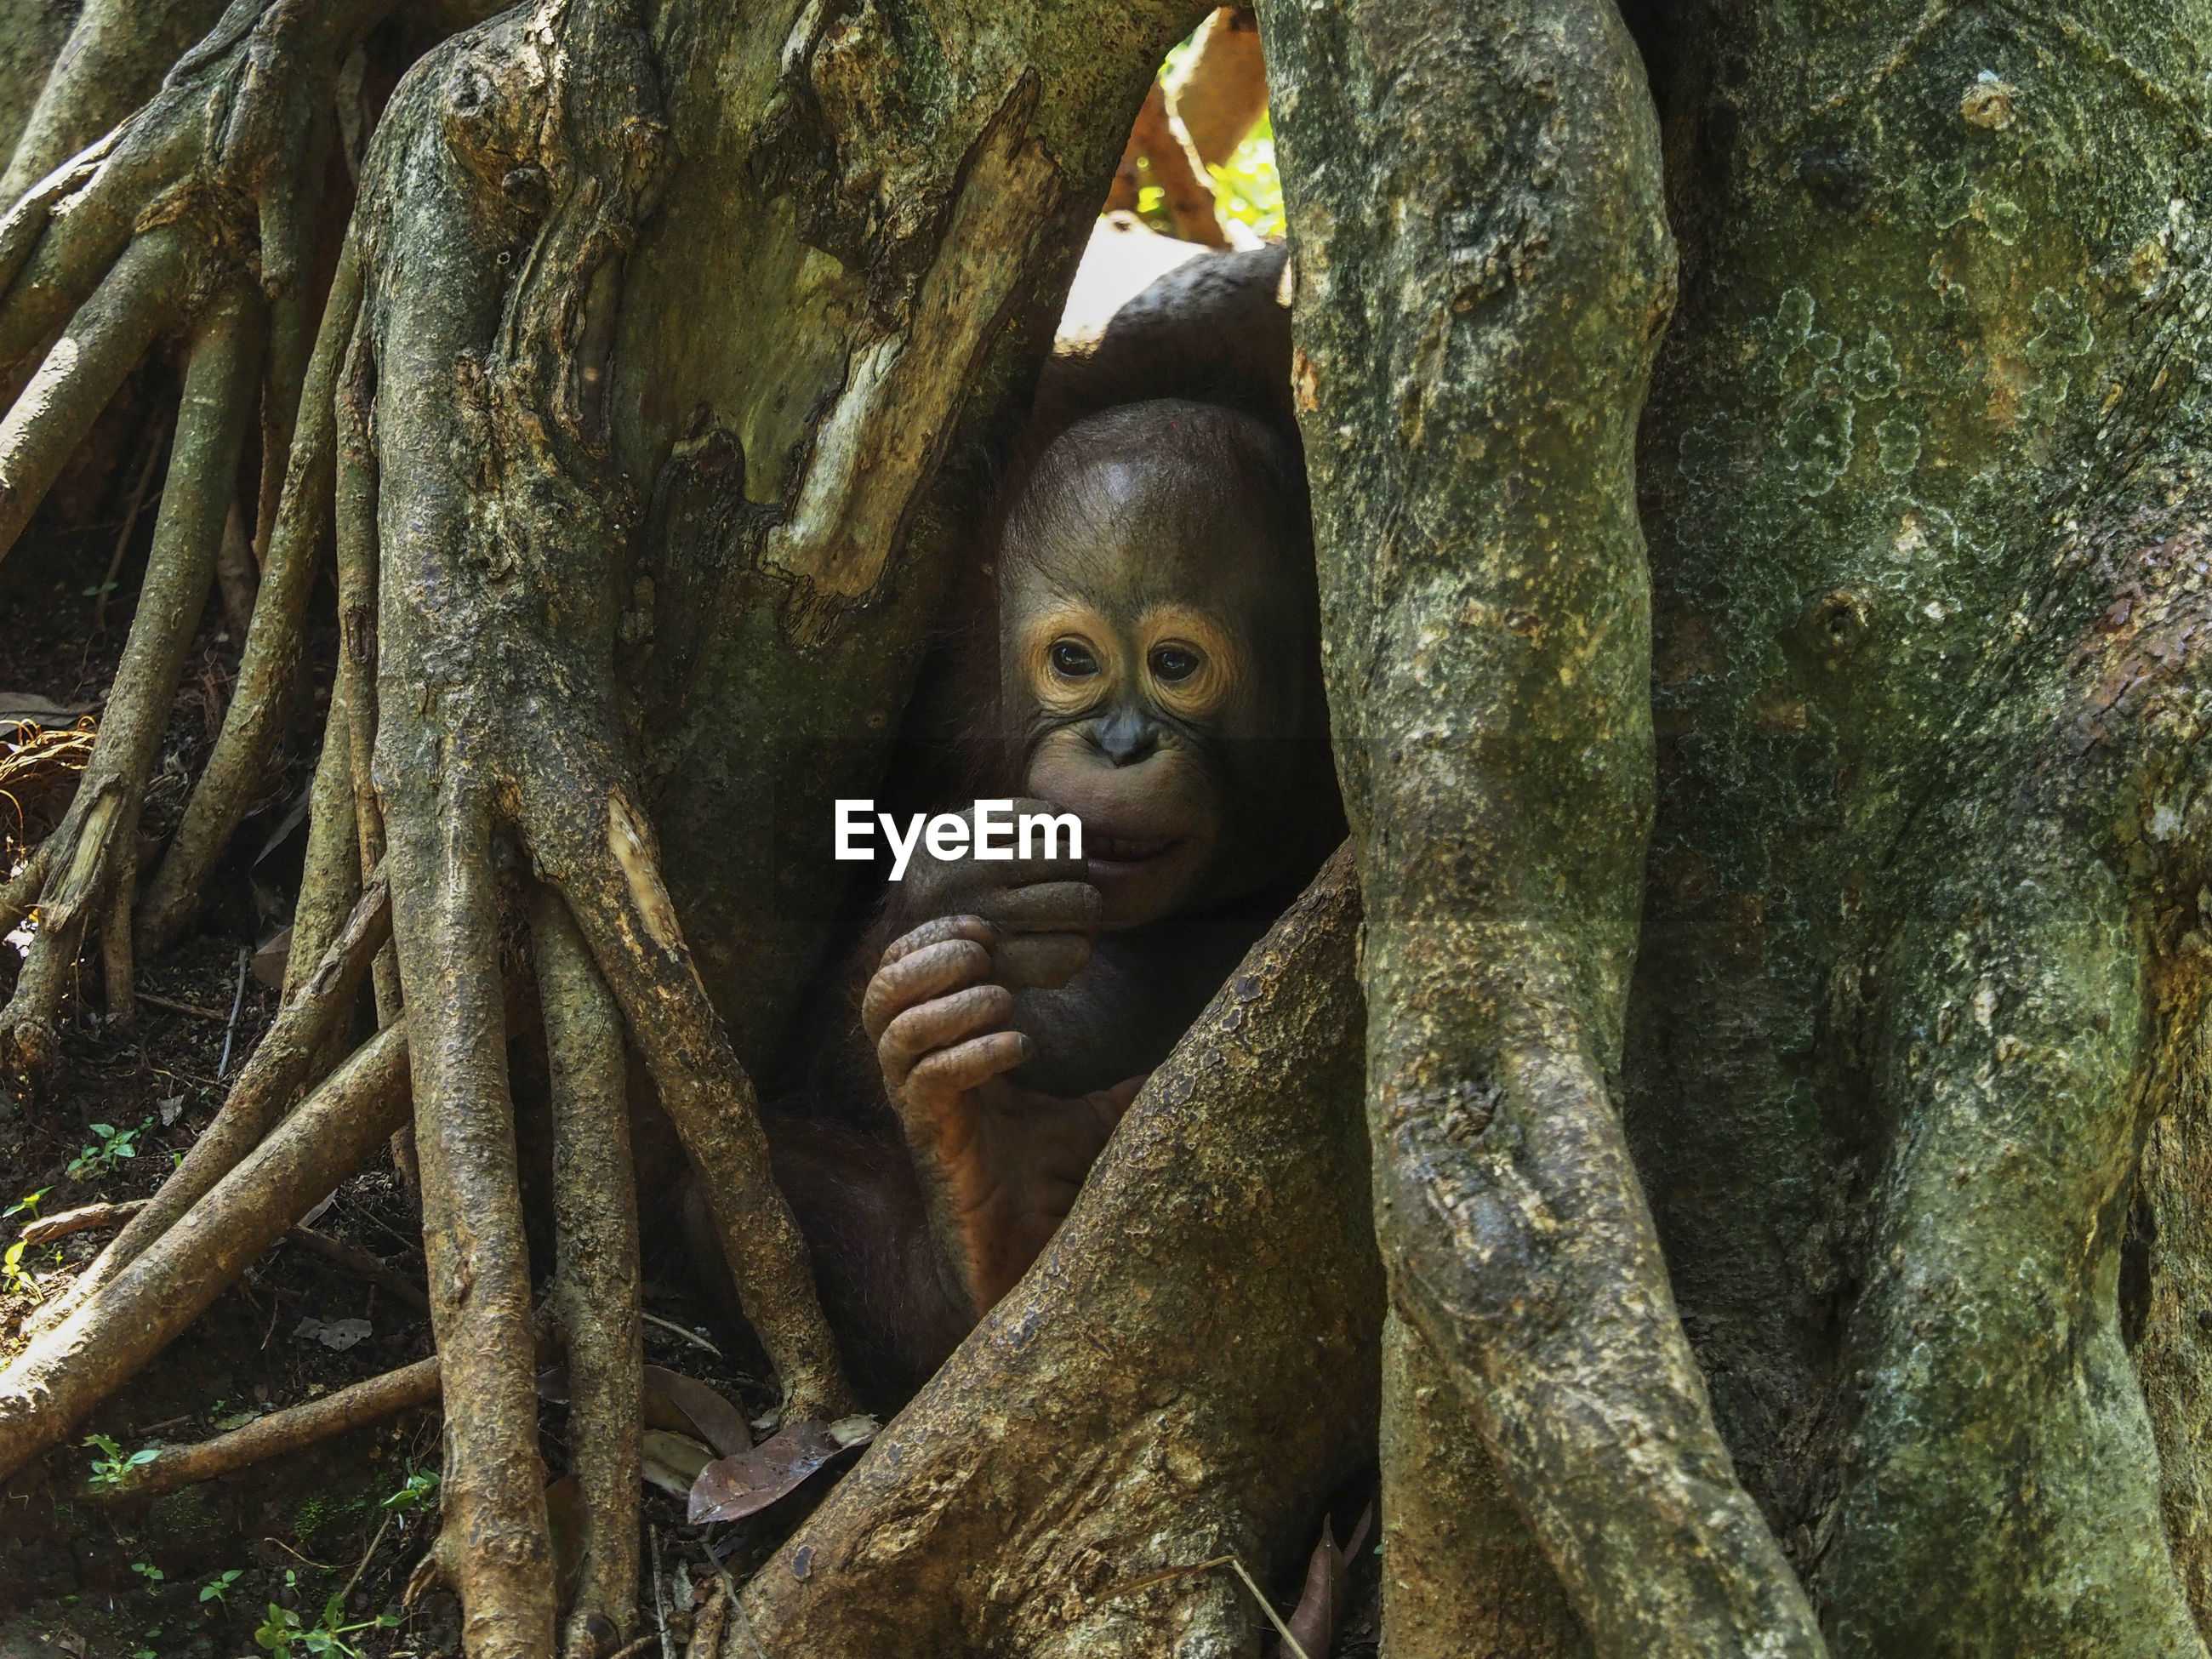 Orangutan by tree trunk in zoo